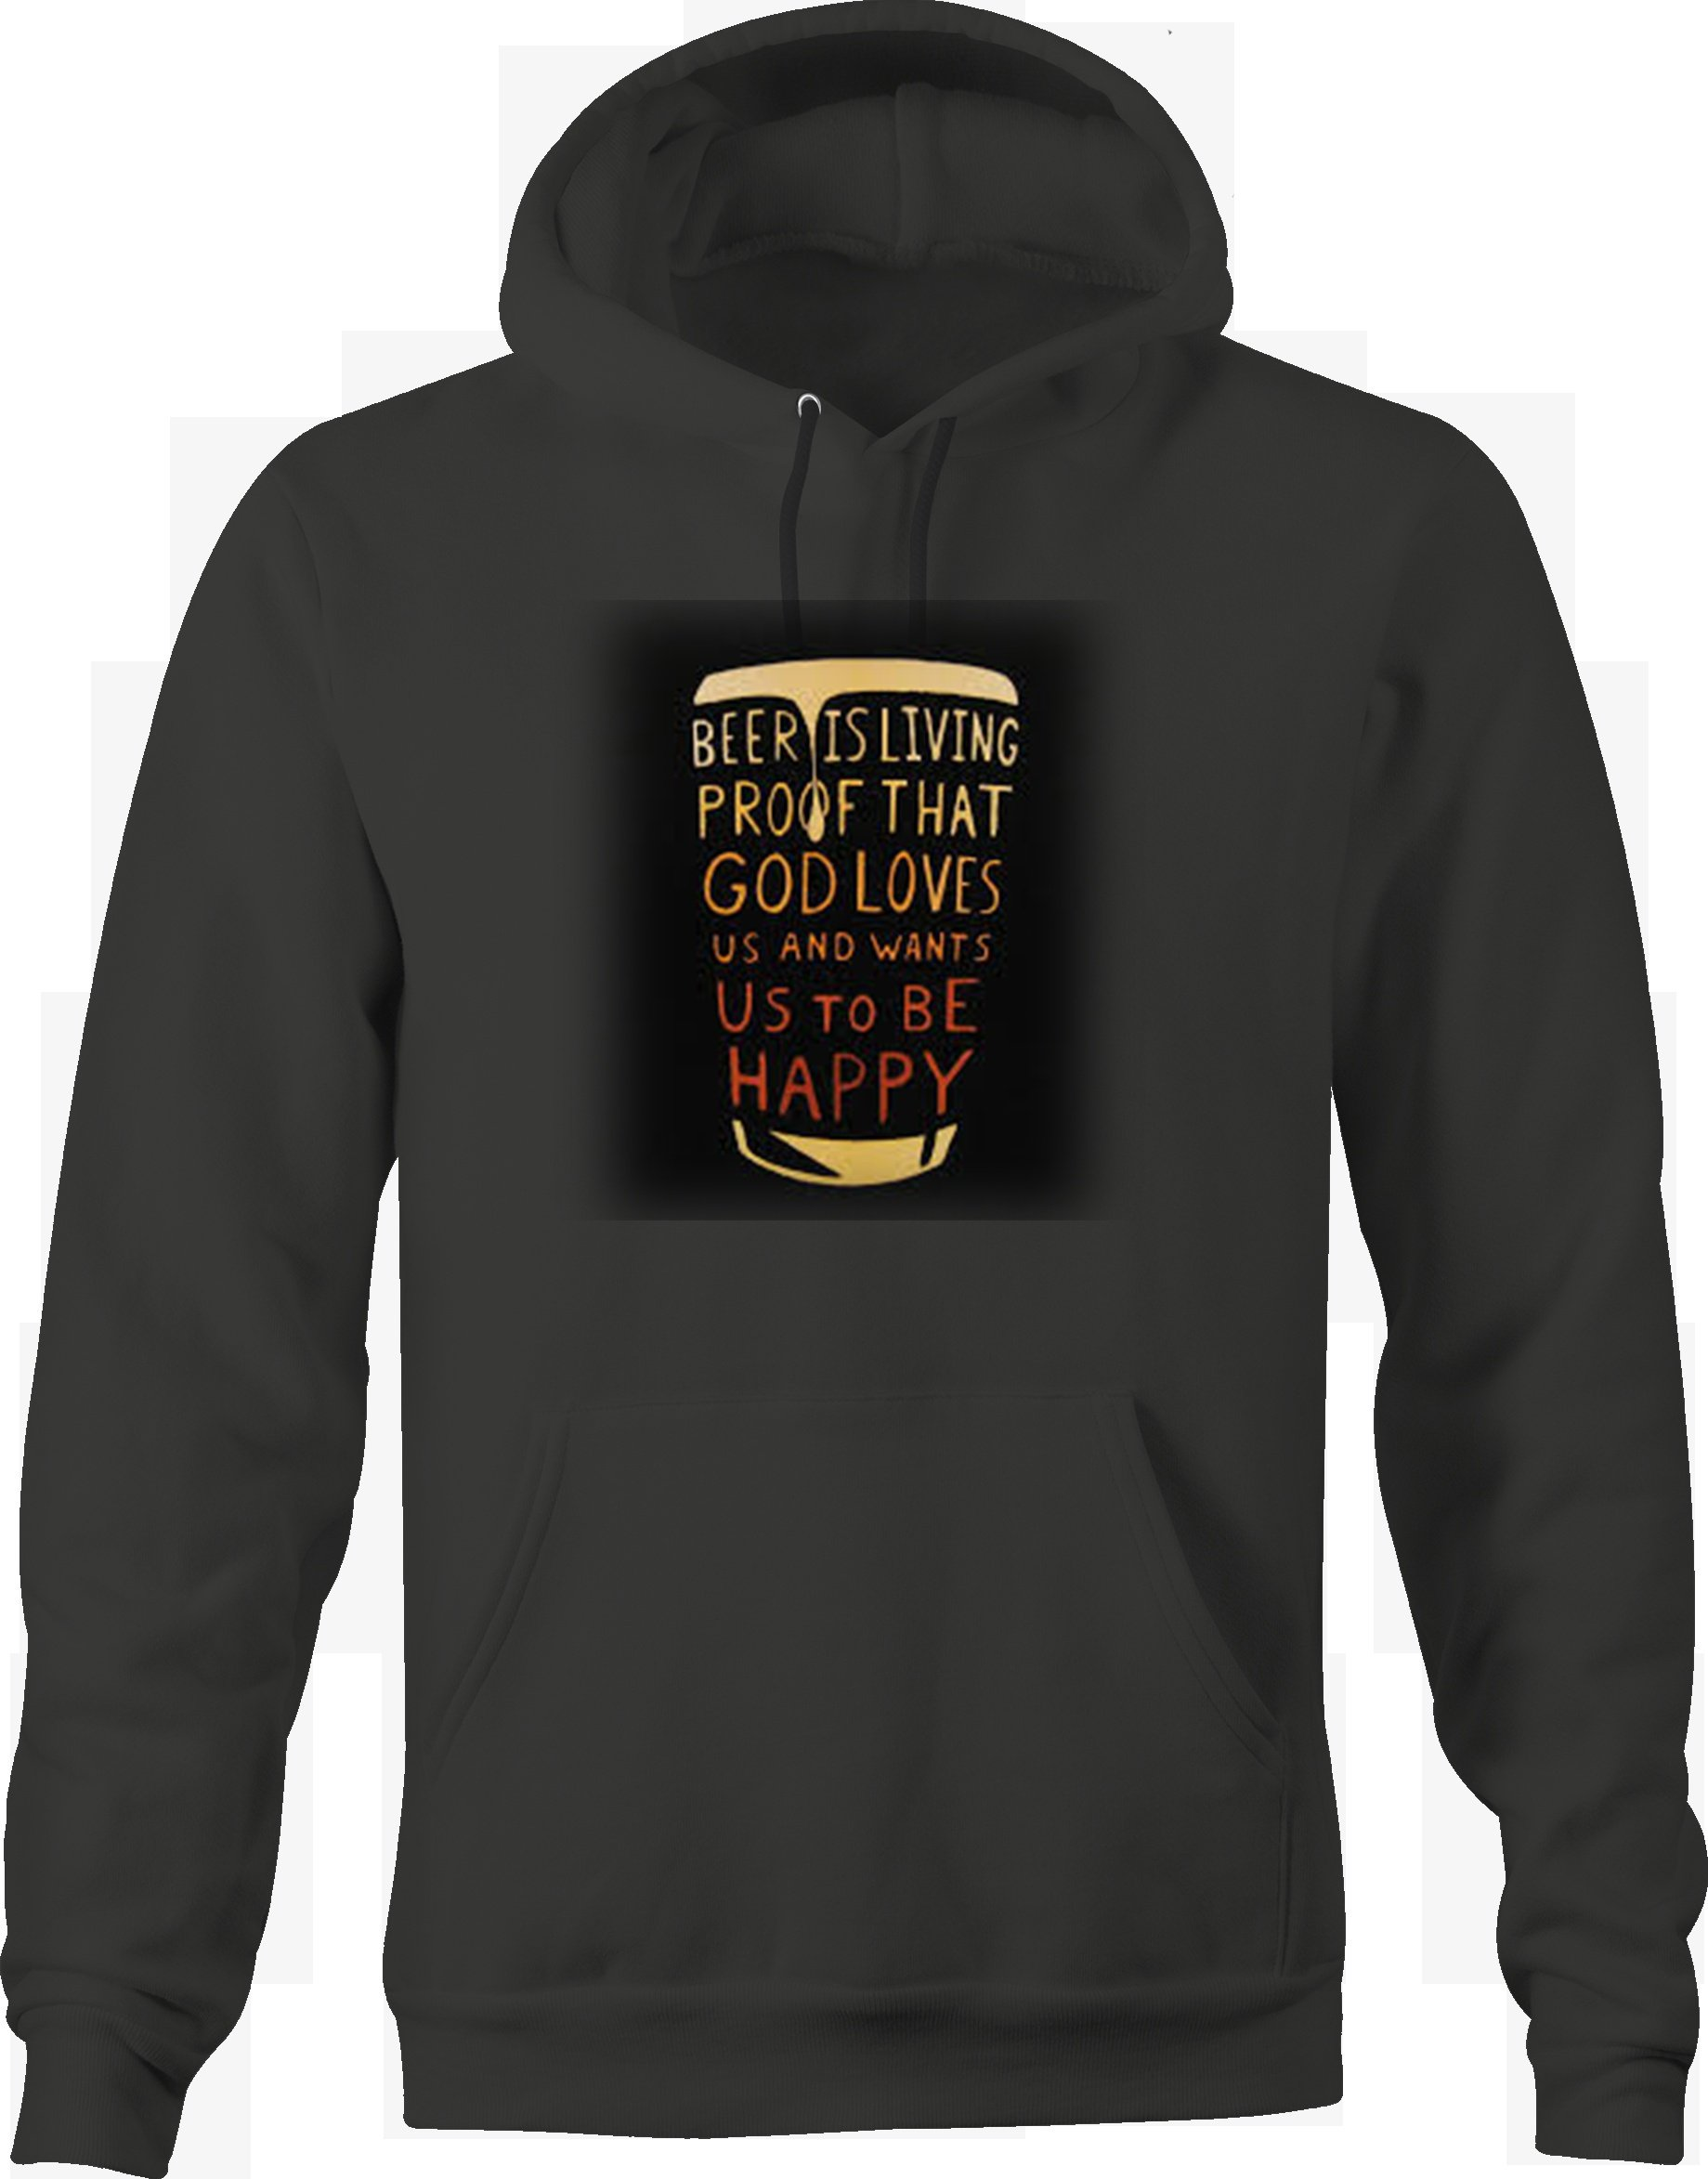 Beer Living Proof God Loves Happy Funny Drinking Quote Pint Glass Sweatshirt - Large